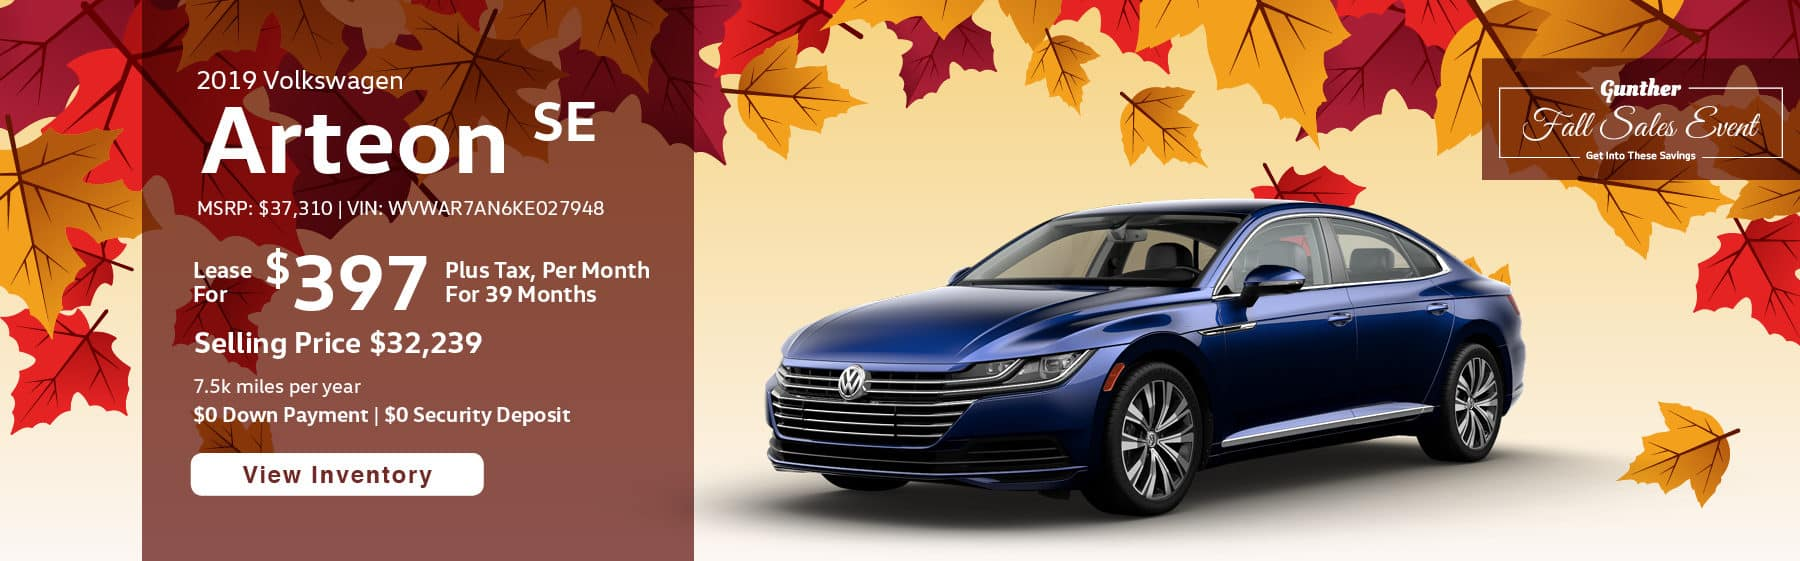 Lease the 2019 Volkswagen Arteon SE for $397 plus tax for 39 months. $0 Down payment required.